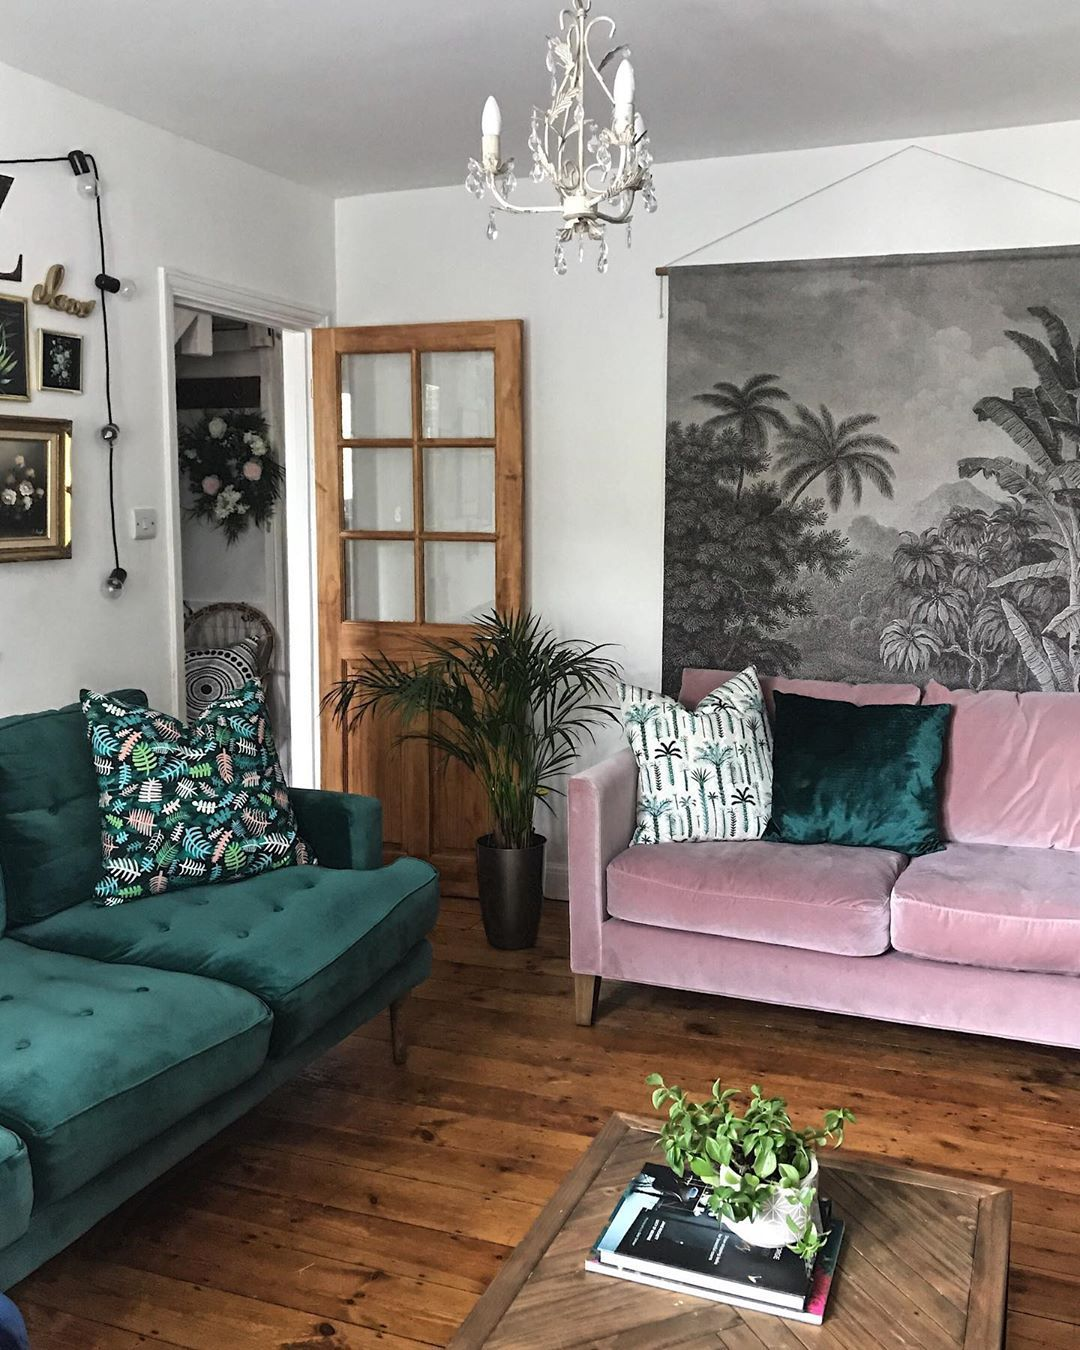 Pink Living Room Design: Pink And Green Velvet Sofas In The Living Room, With